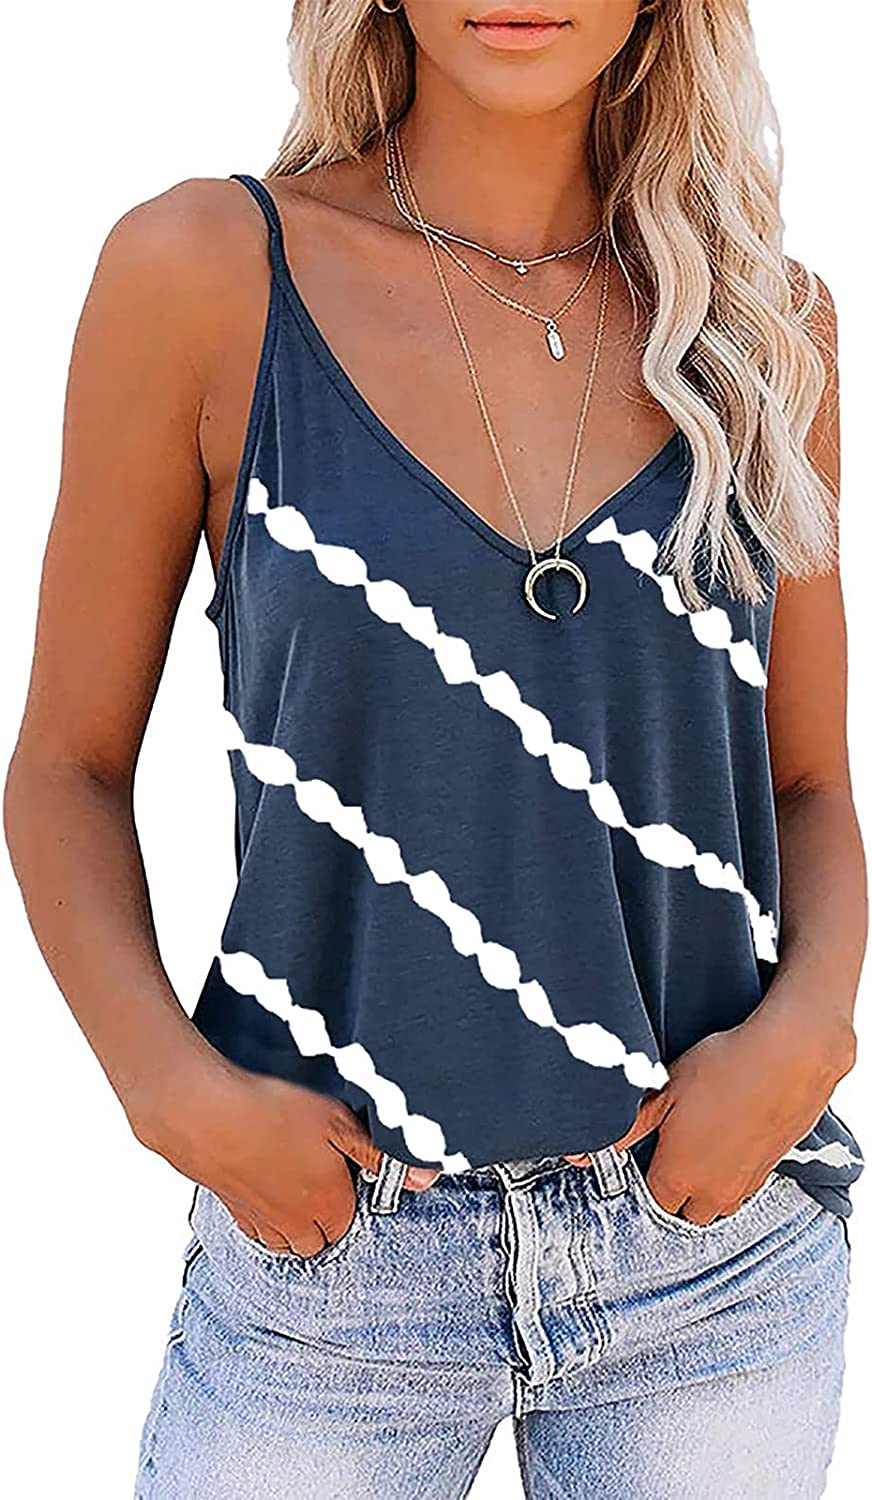 Summer Tops for Women Sexy,Cute Sleeveless V Neck Workout Tank Tops Printed Running Casual Athletic T Shirts